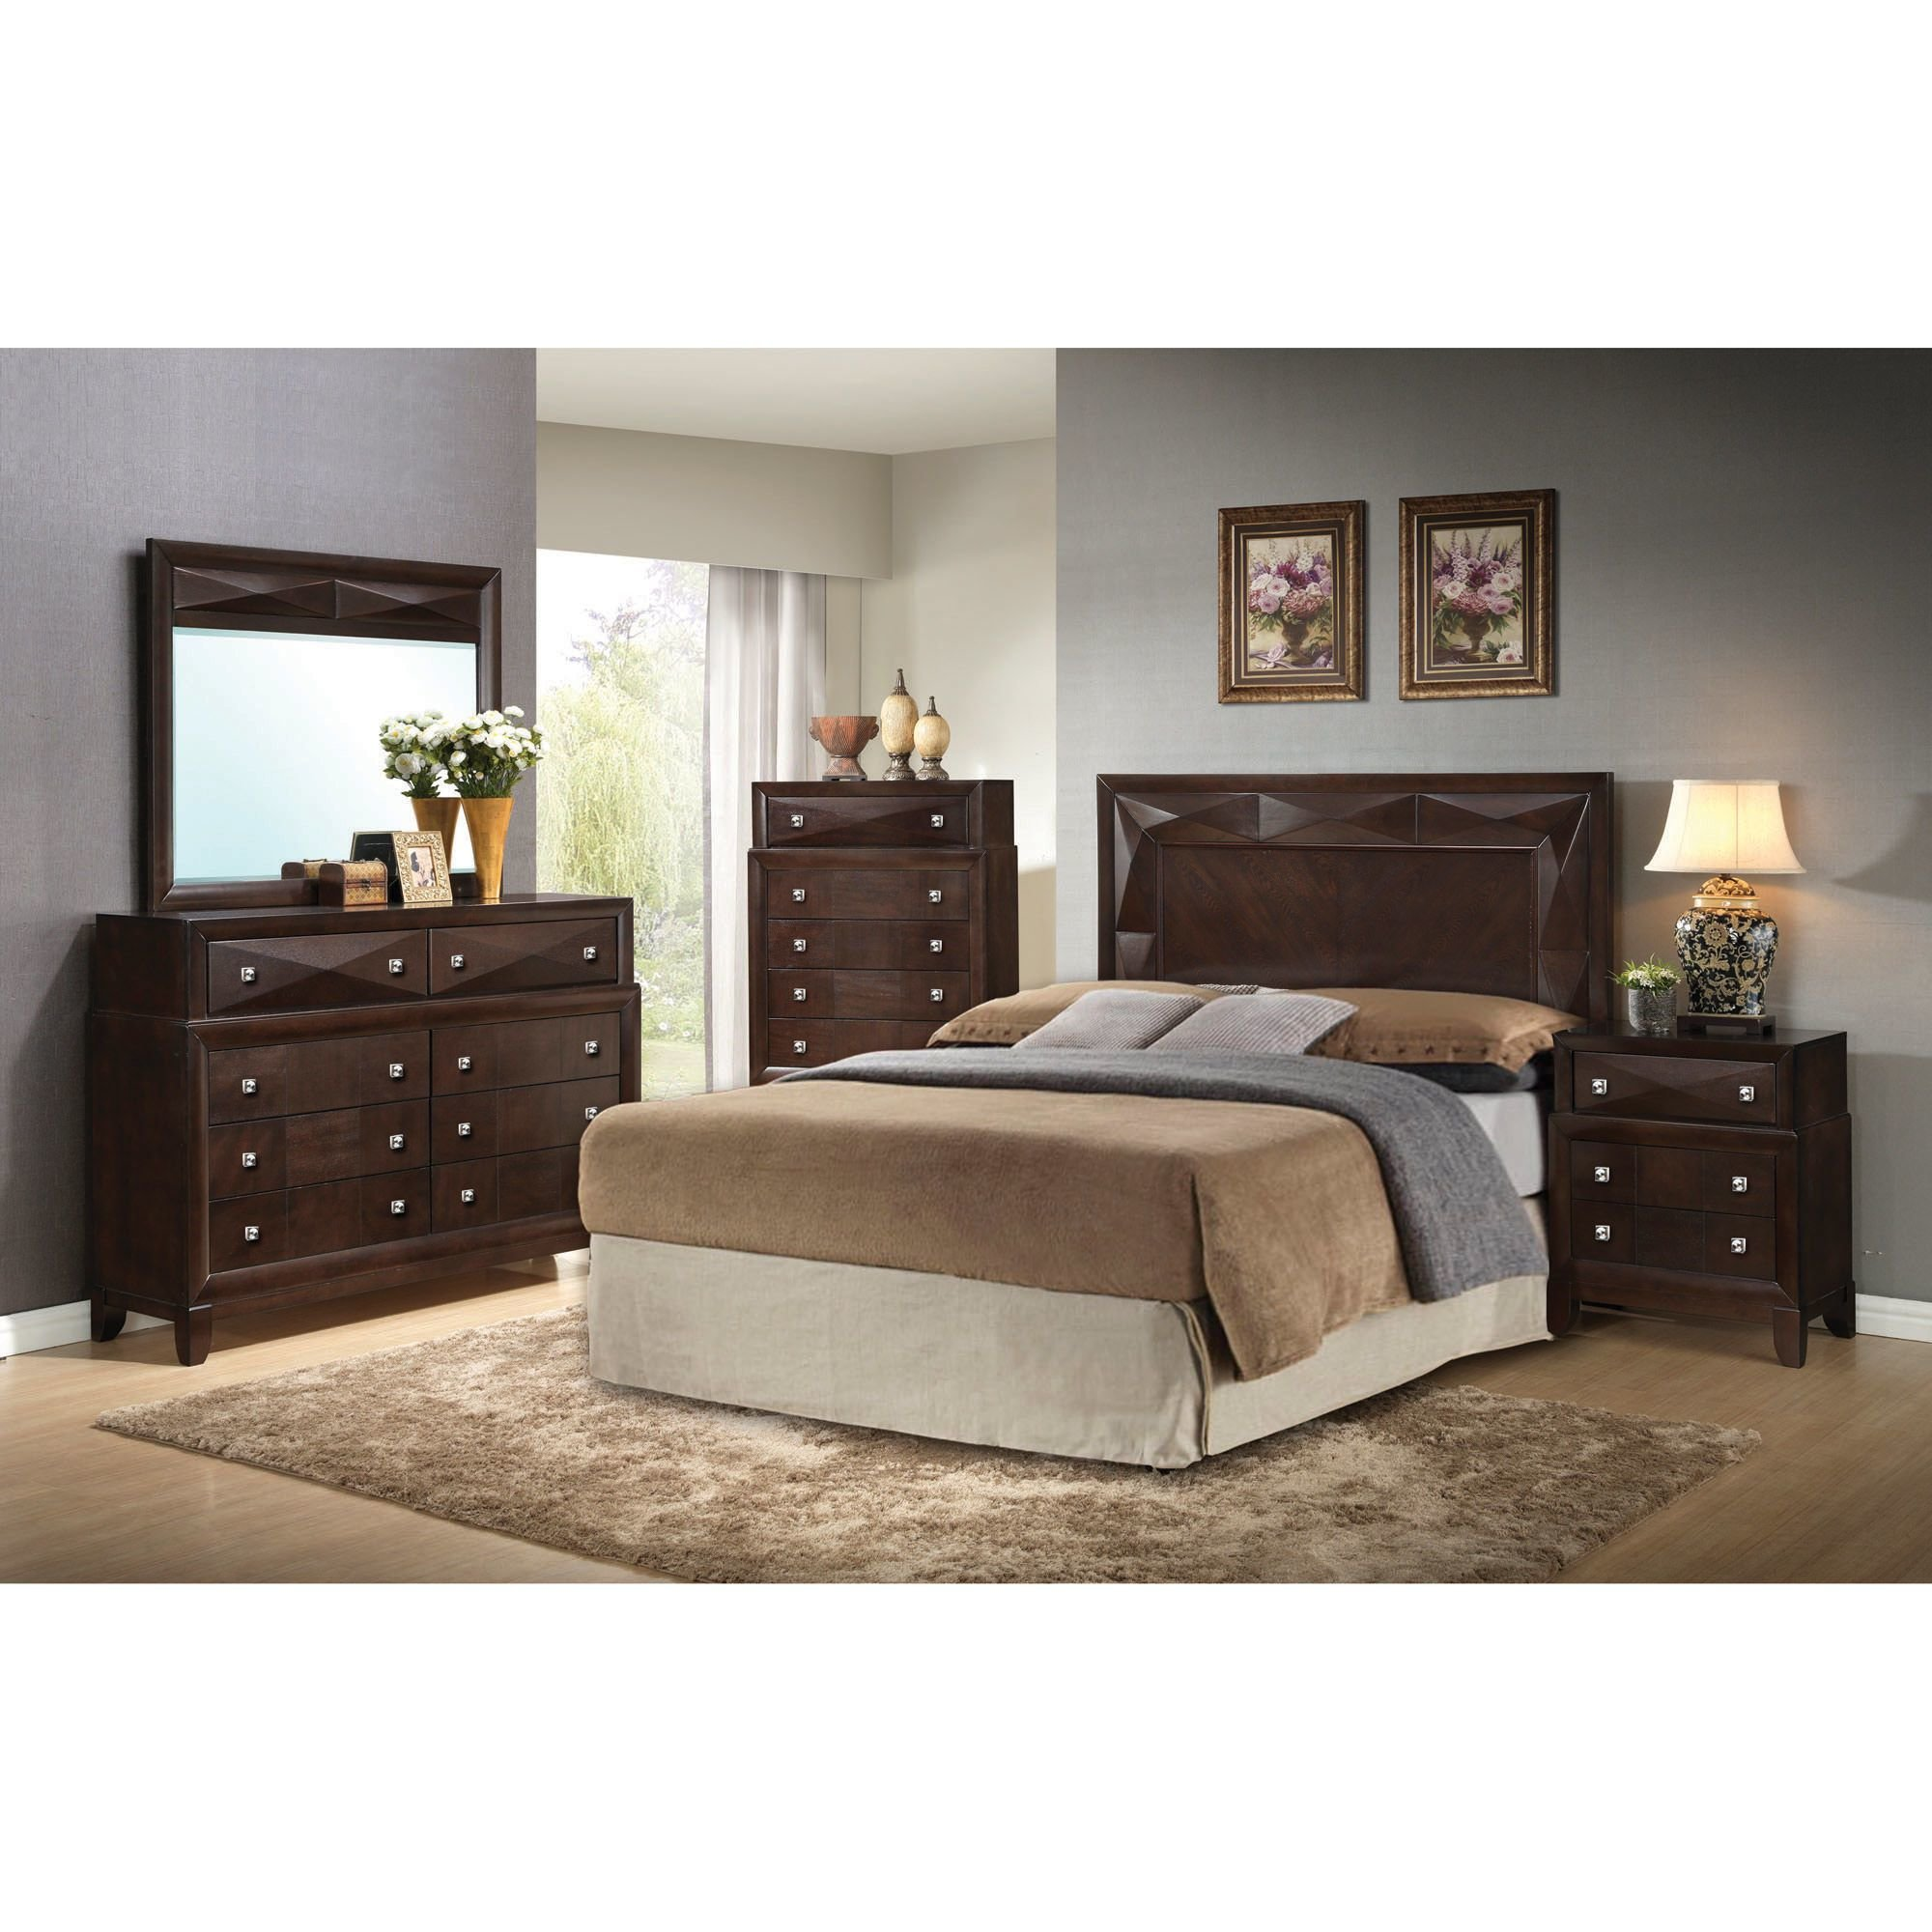 Best Step One Furniture Bedroom Groups 5 Piece Kingsbury Queen Bedroom Collection With Pictures